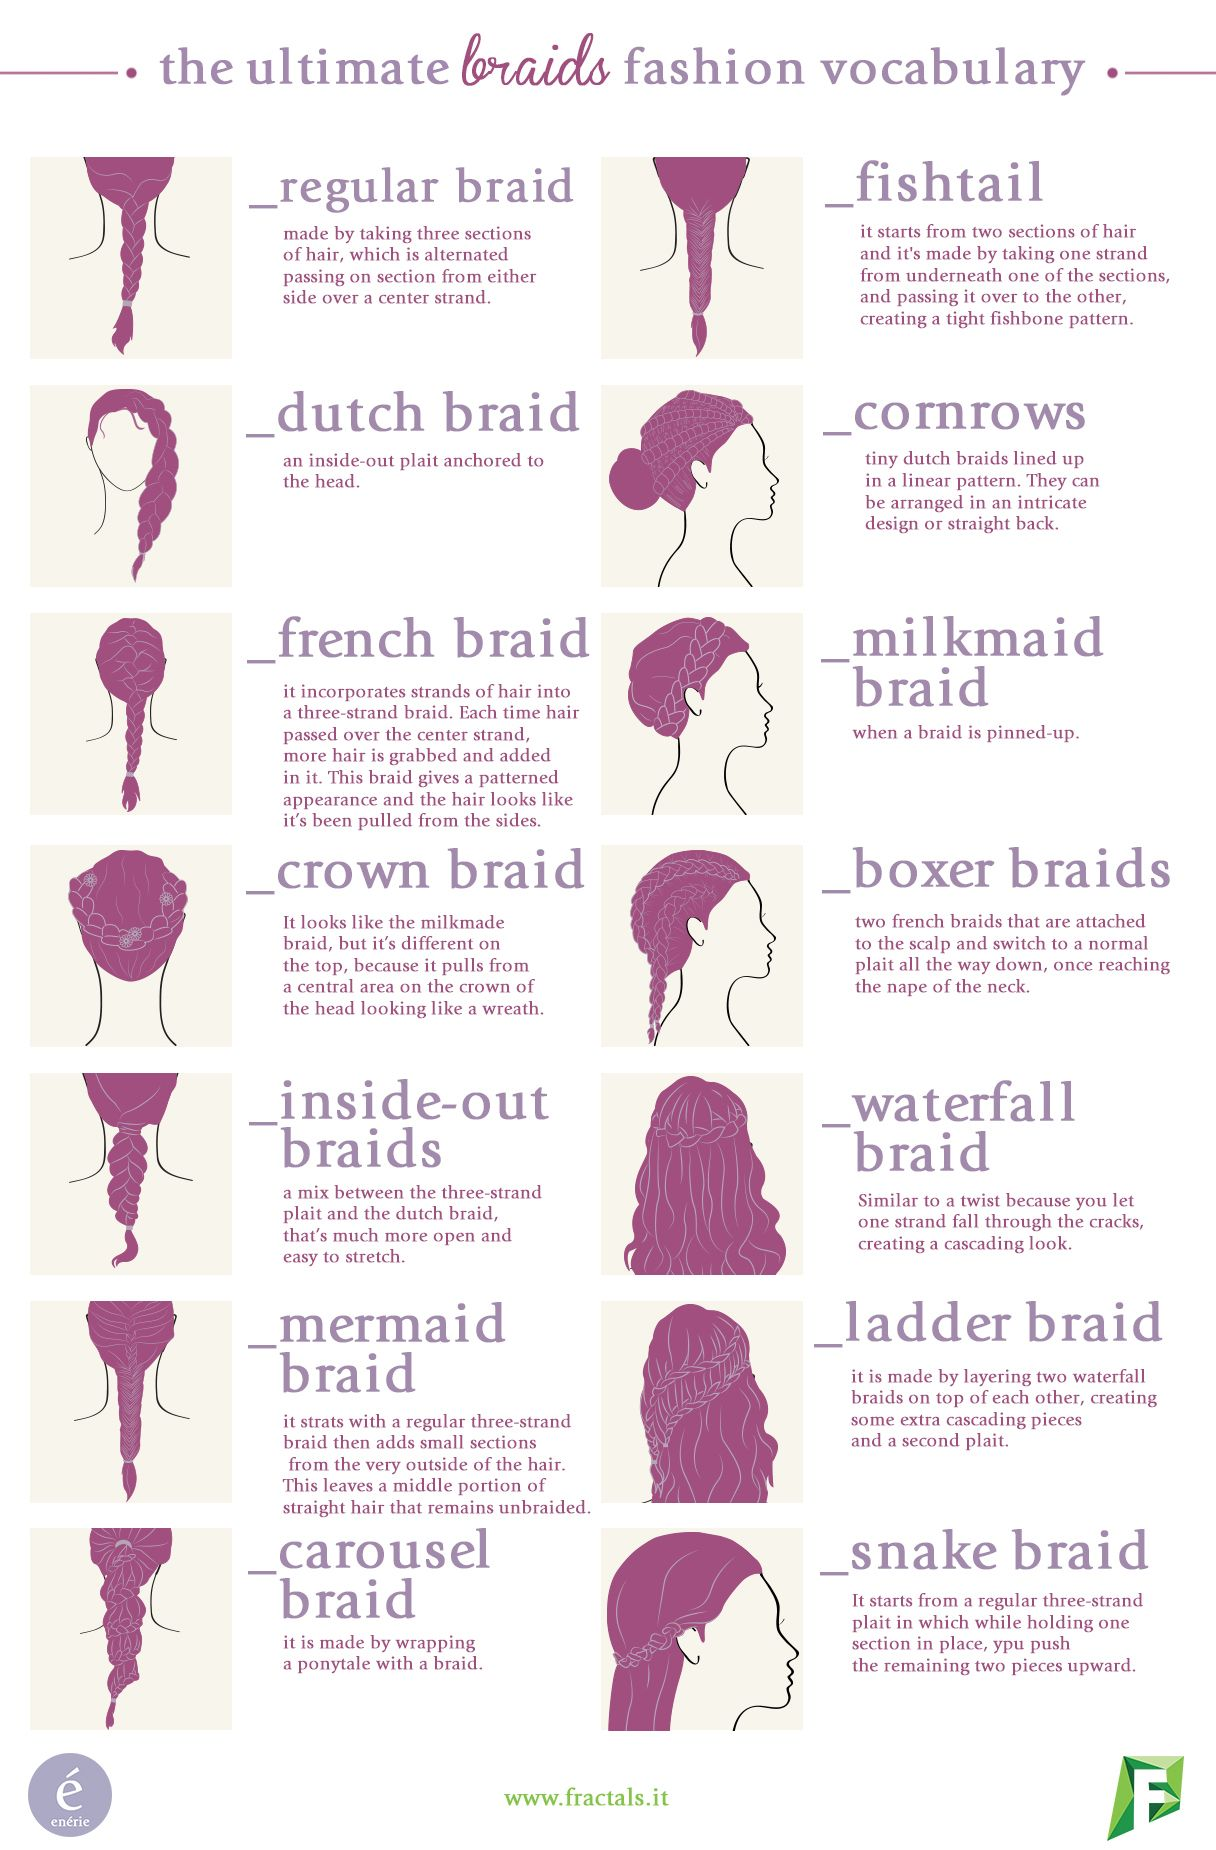 Discover all the different types of braids in our new vocabulary! Do